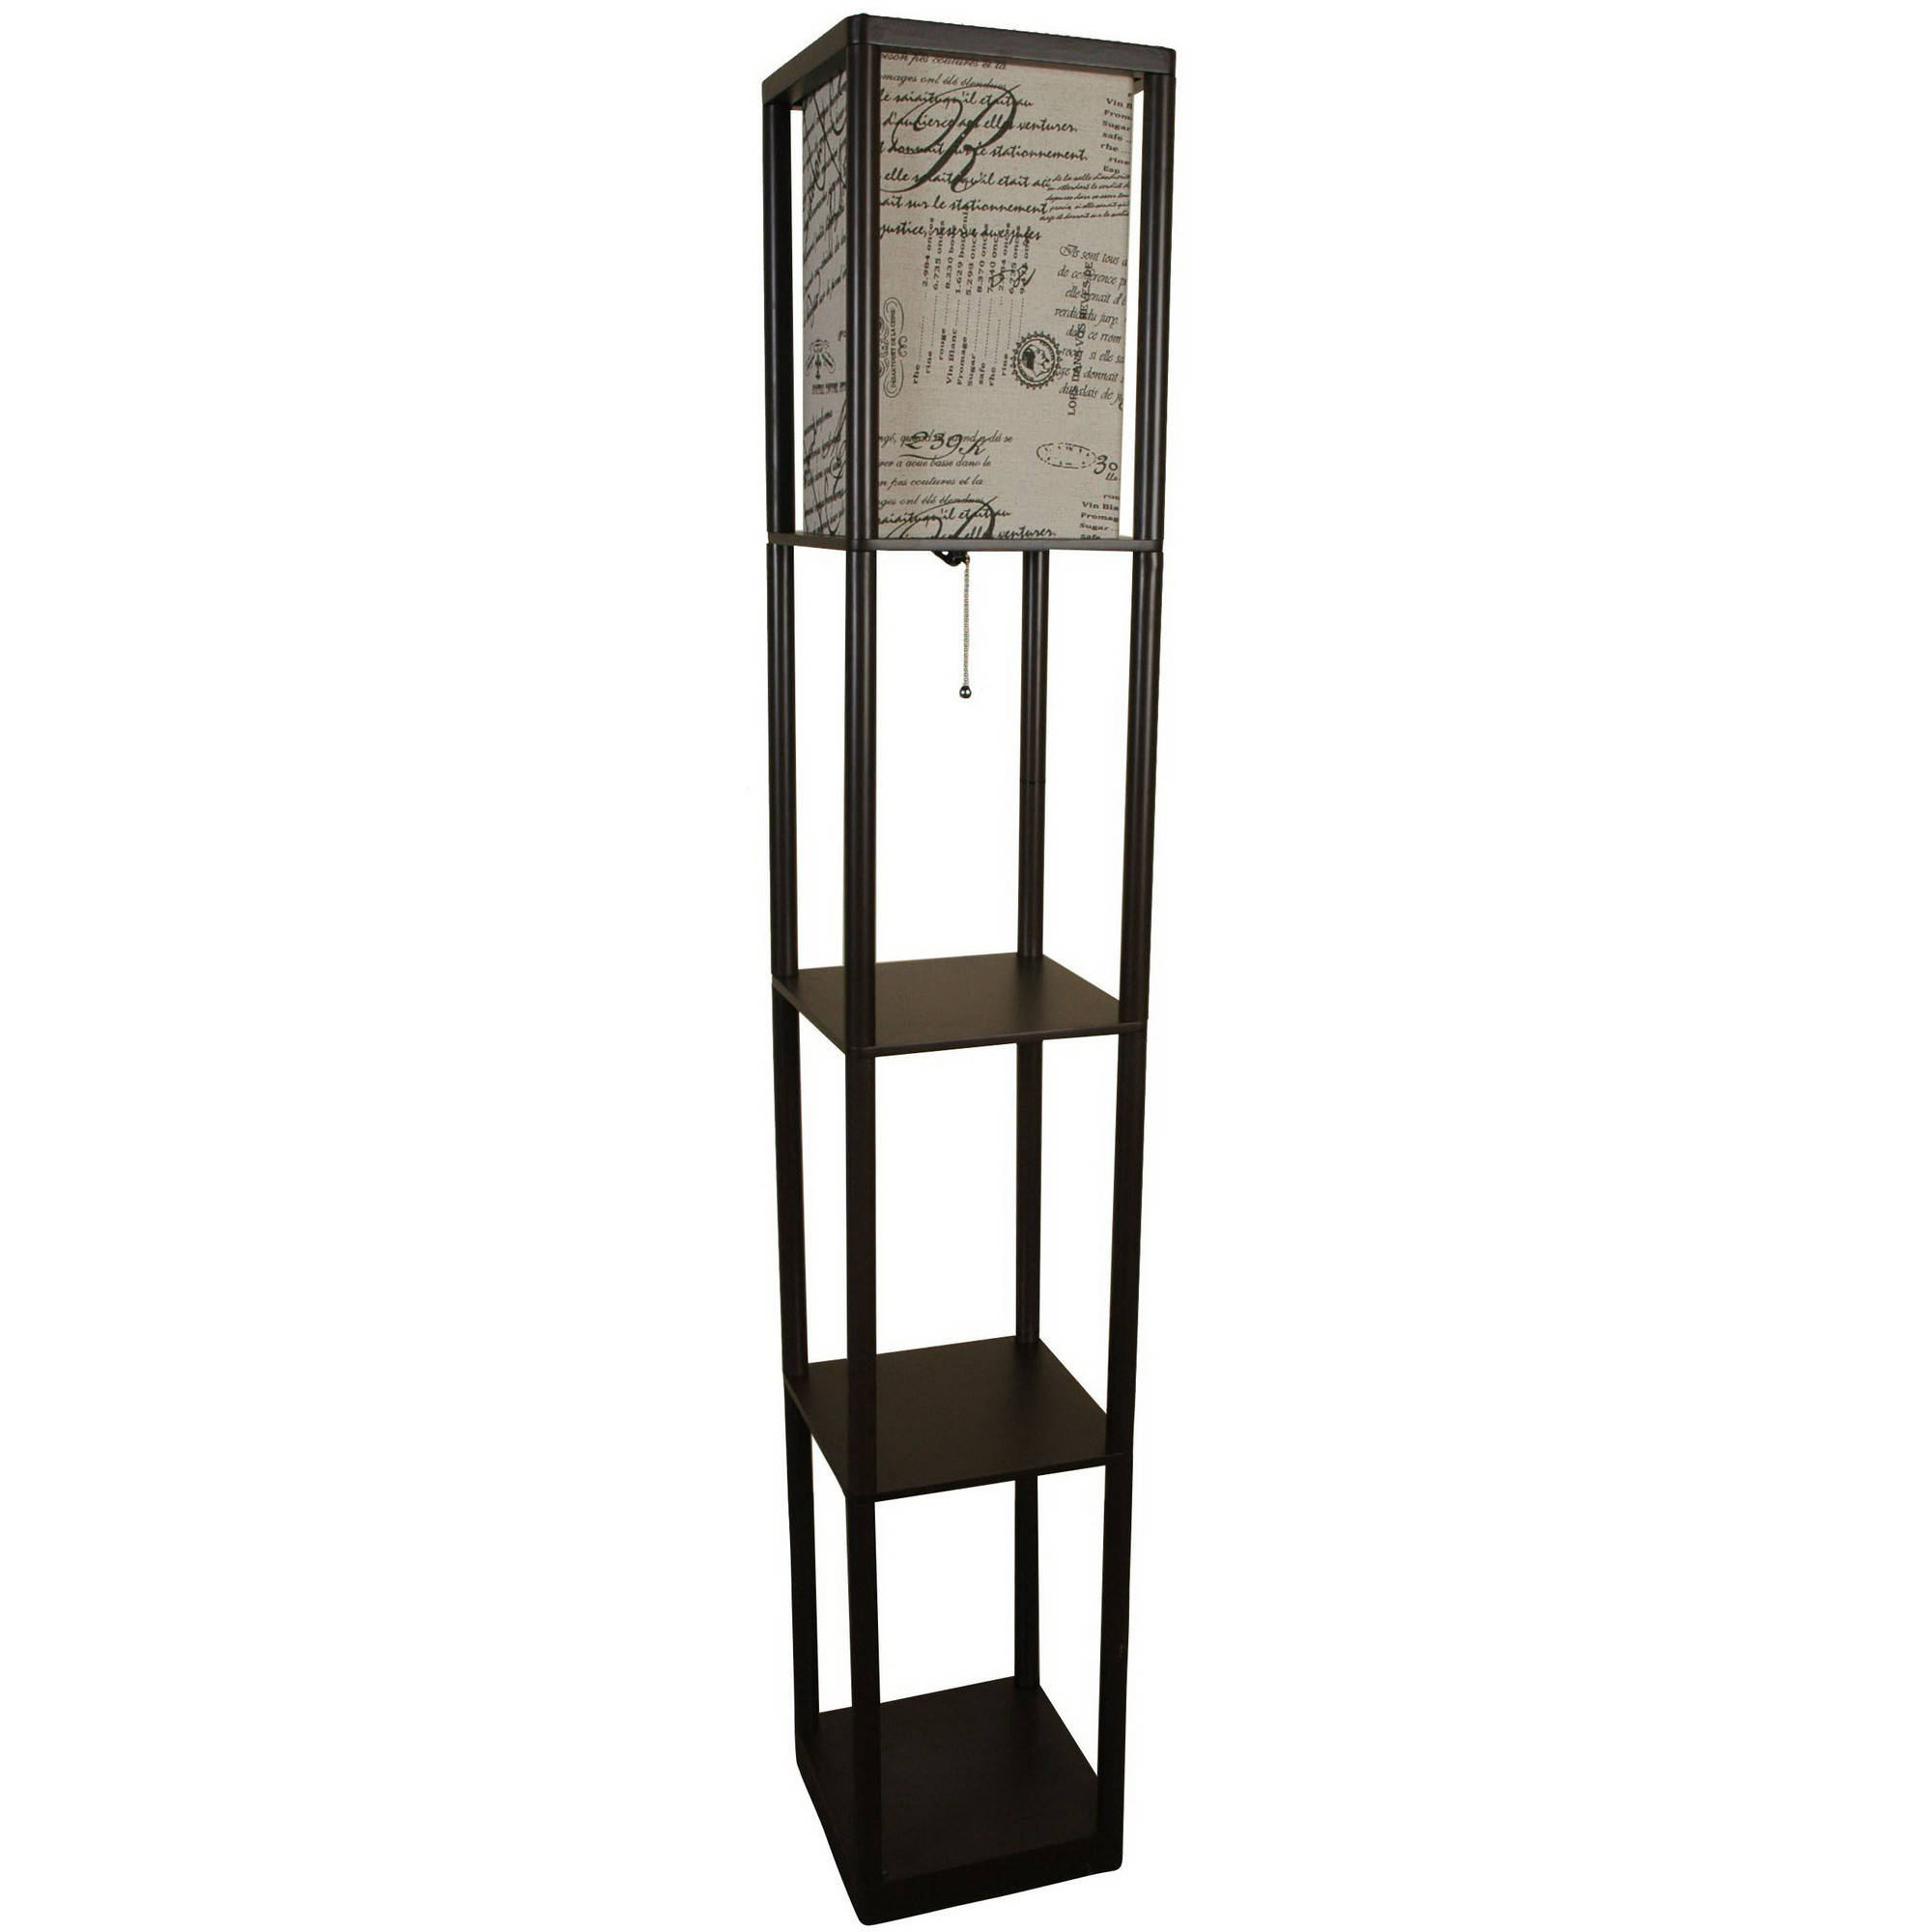 Mainstays Script Shade Brown Shelf Floor Lamp by Mastercraft Distribution USA, Inc.